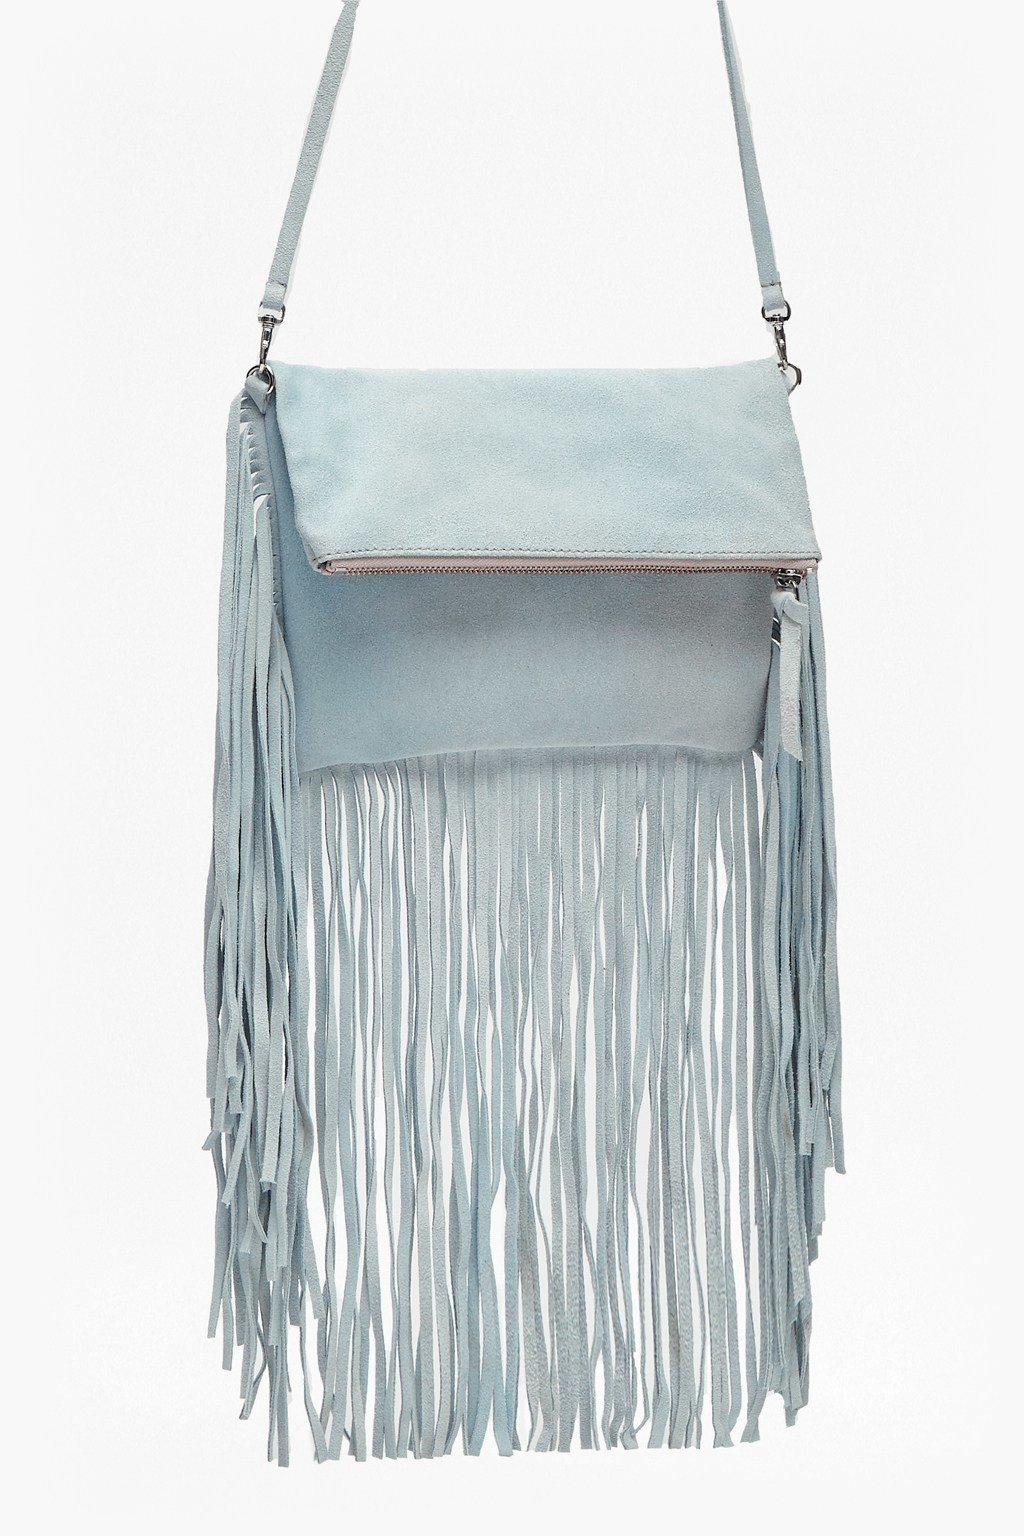 Tia Fringe Foldover Suede Clutch Saltwater - predominant colour: pale blue; occasions: casual, creative work; type of pattern: standard; style: shoulder; length: shoulder (tucks under arm); size: standard; material: suede; embellishment: fringing; pattern: plain; finish: plain; season: s/s 2016; wardrobe: highlight